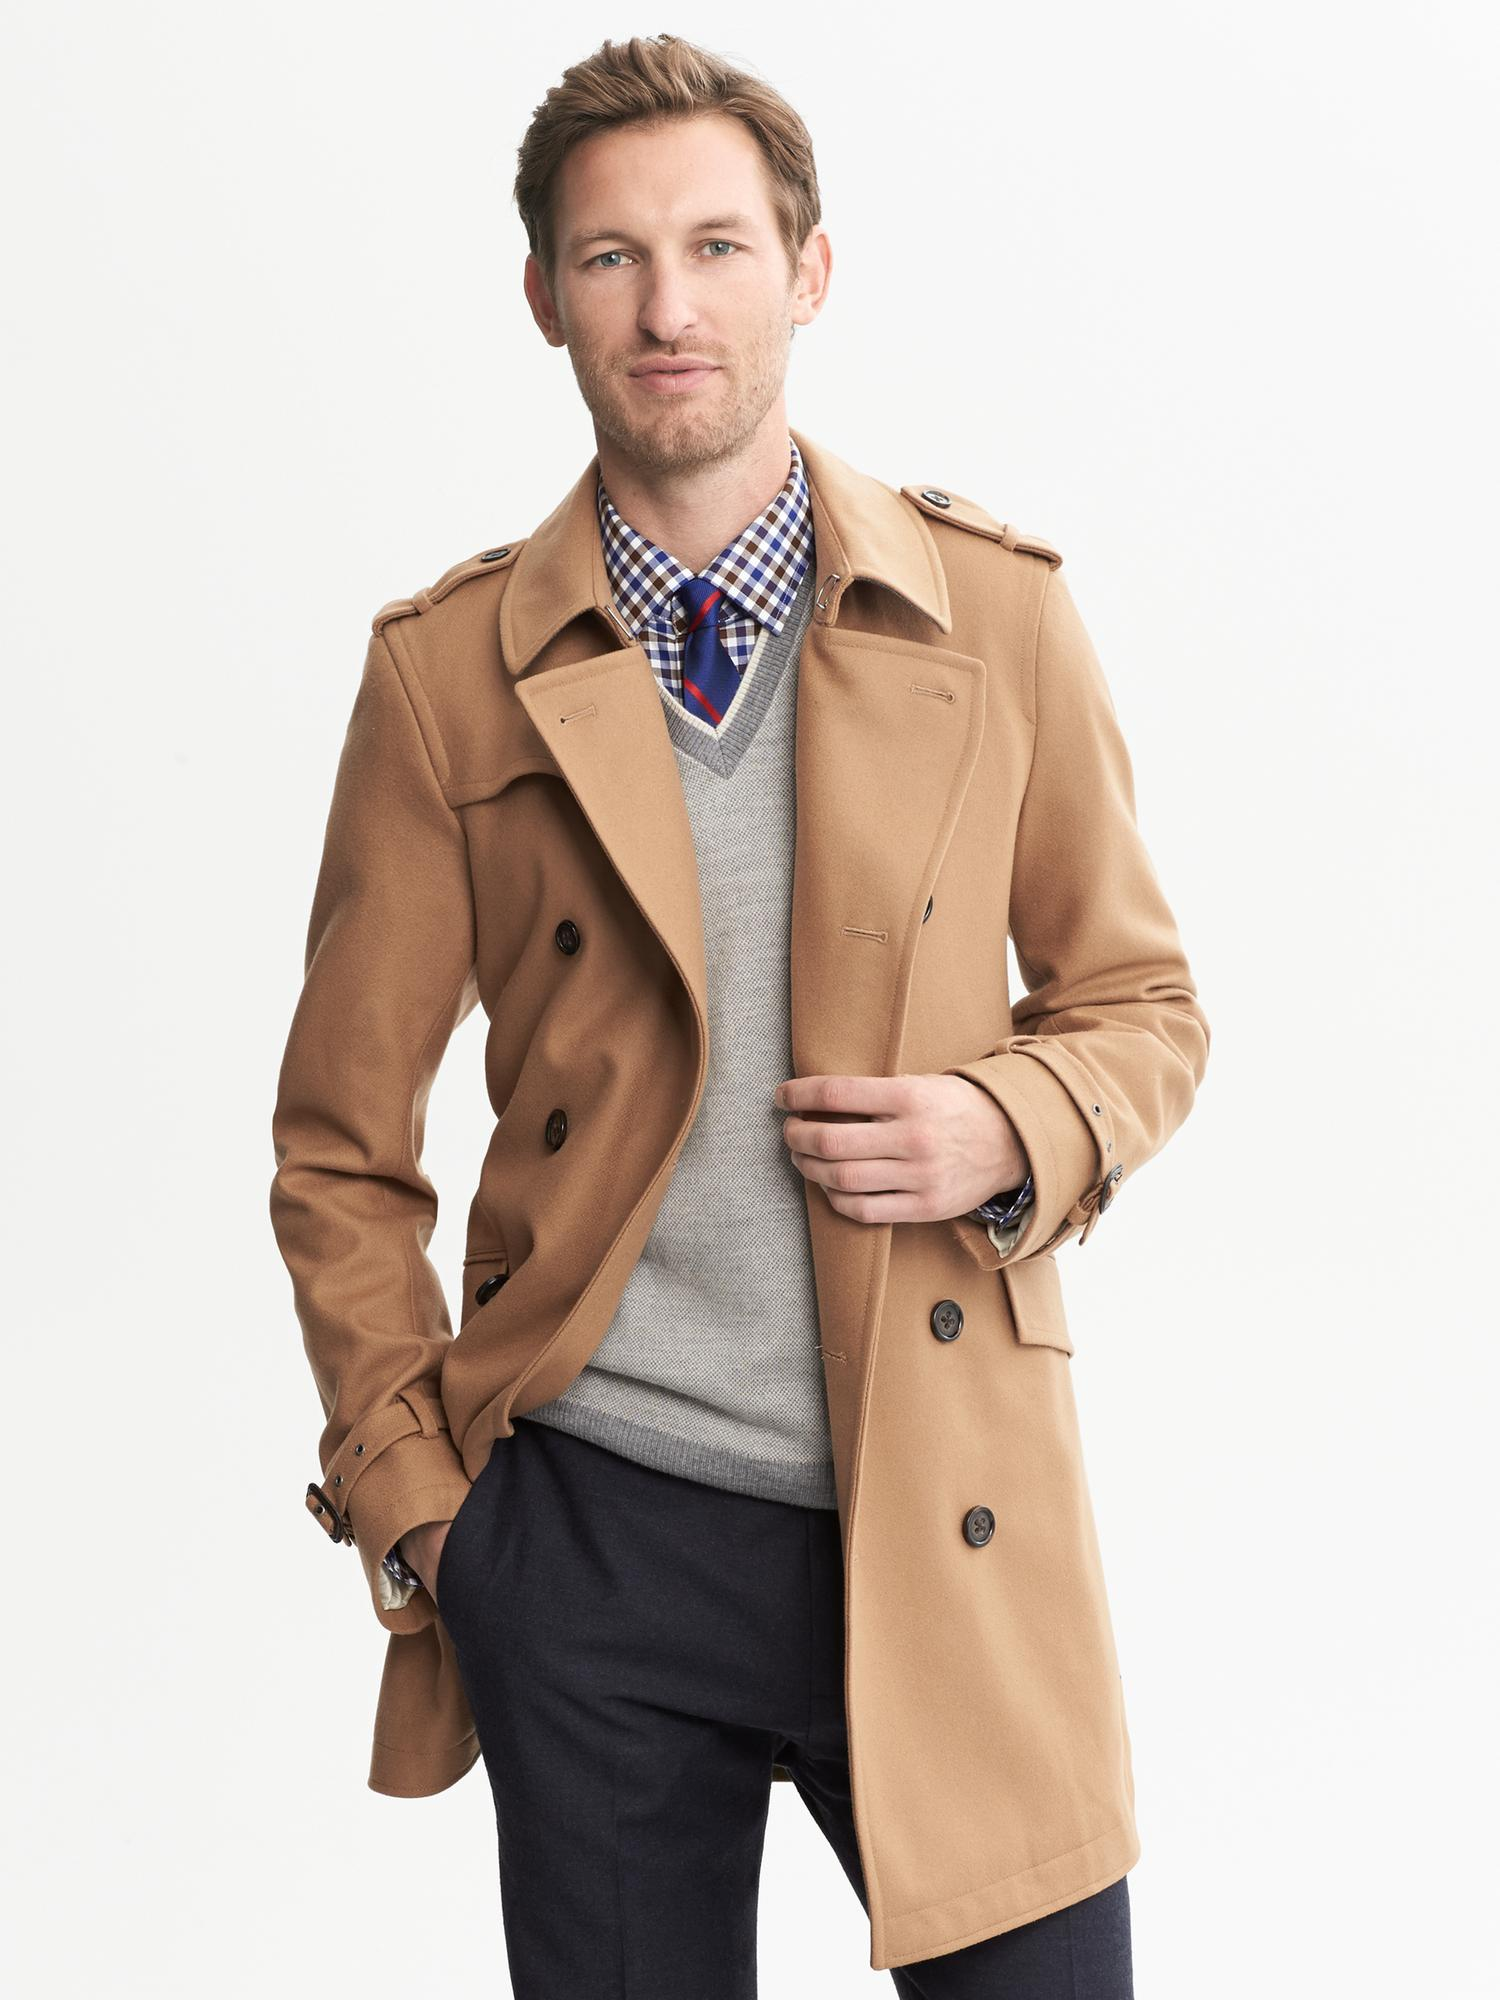 Shop Men's Jackets & Outerwear at Banana Republic Online Look sophisticated while keeping warm with men's outerwear available at Banana Republic. This eclectic collection features professional and casual styles perfect for work and home.